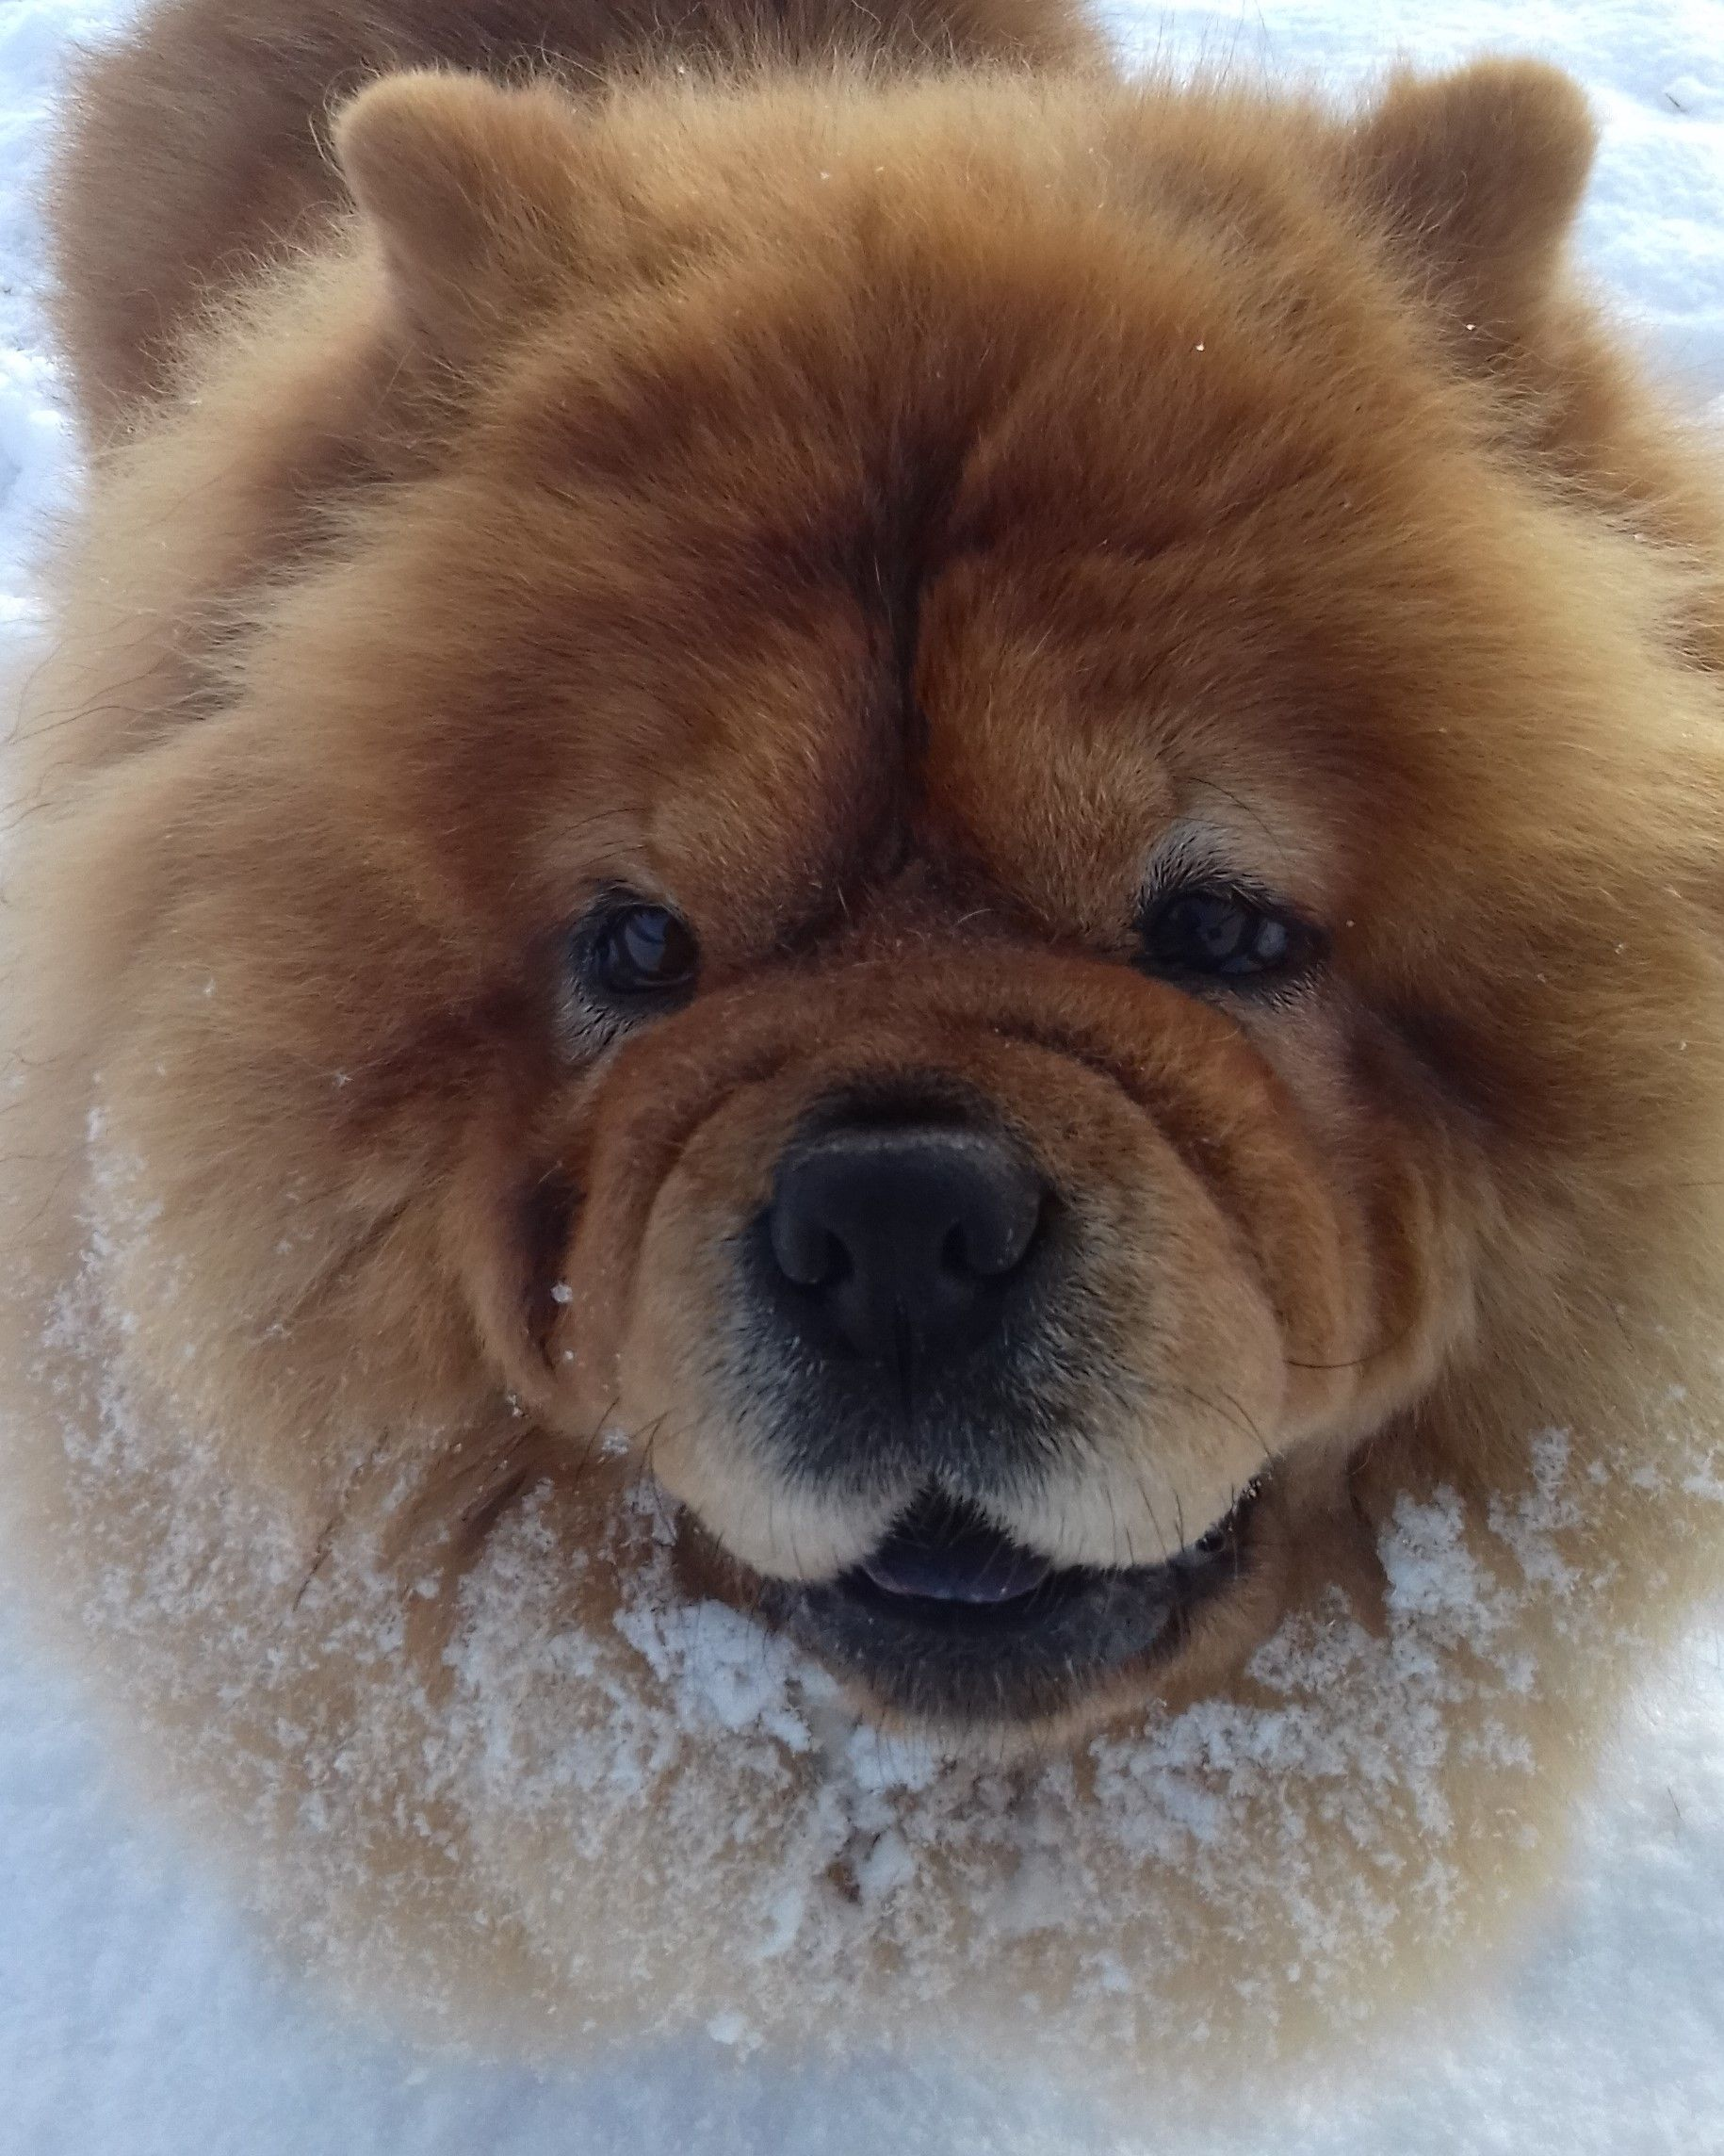 My Happy Mishka Baby Cutest Dog Ever Chow Chow Dogs Cute Dogs